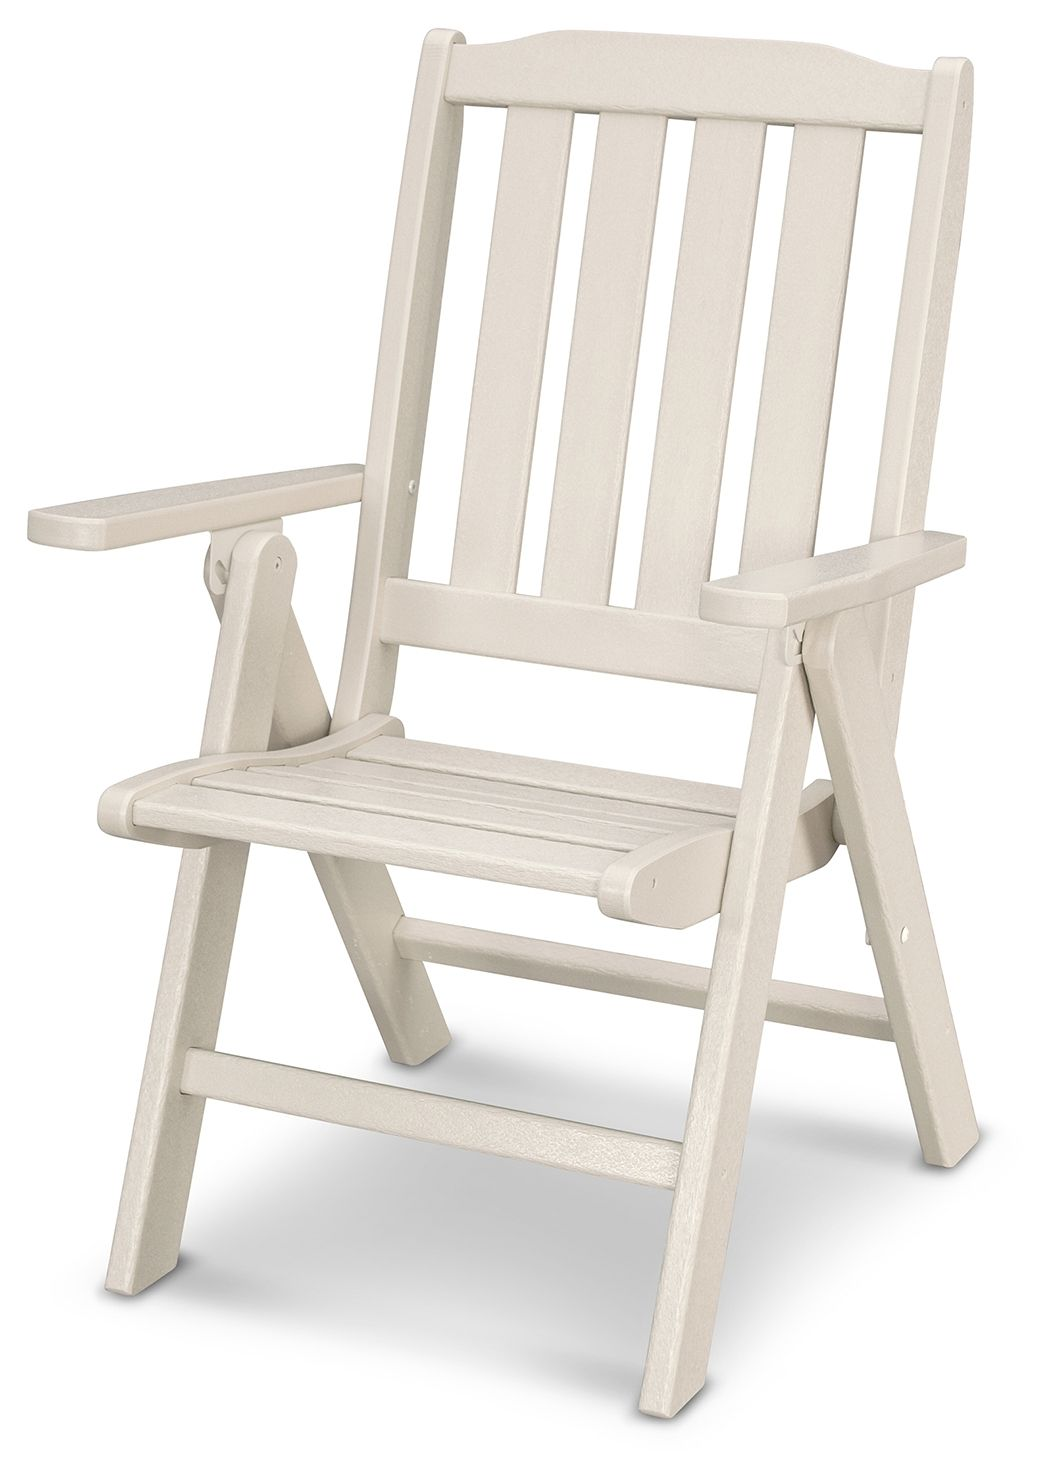 Polywood Emerson All Weather Folding Chair Sand